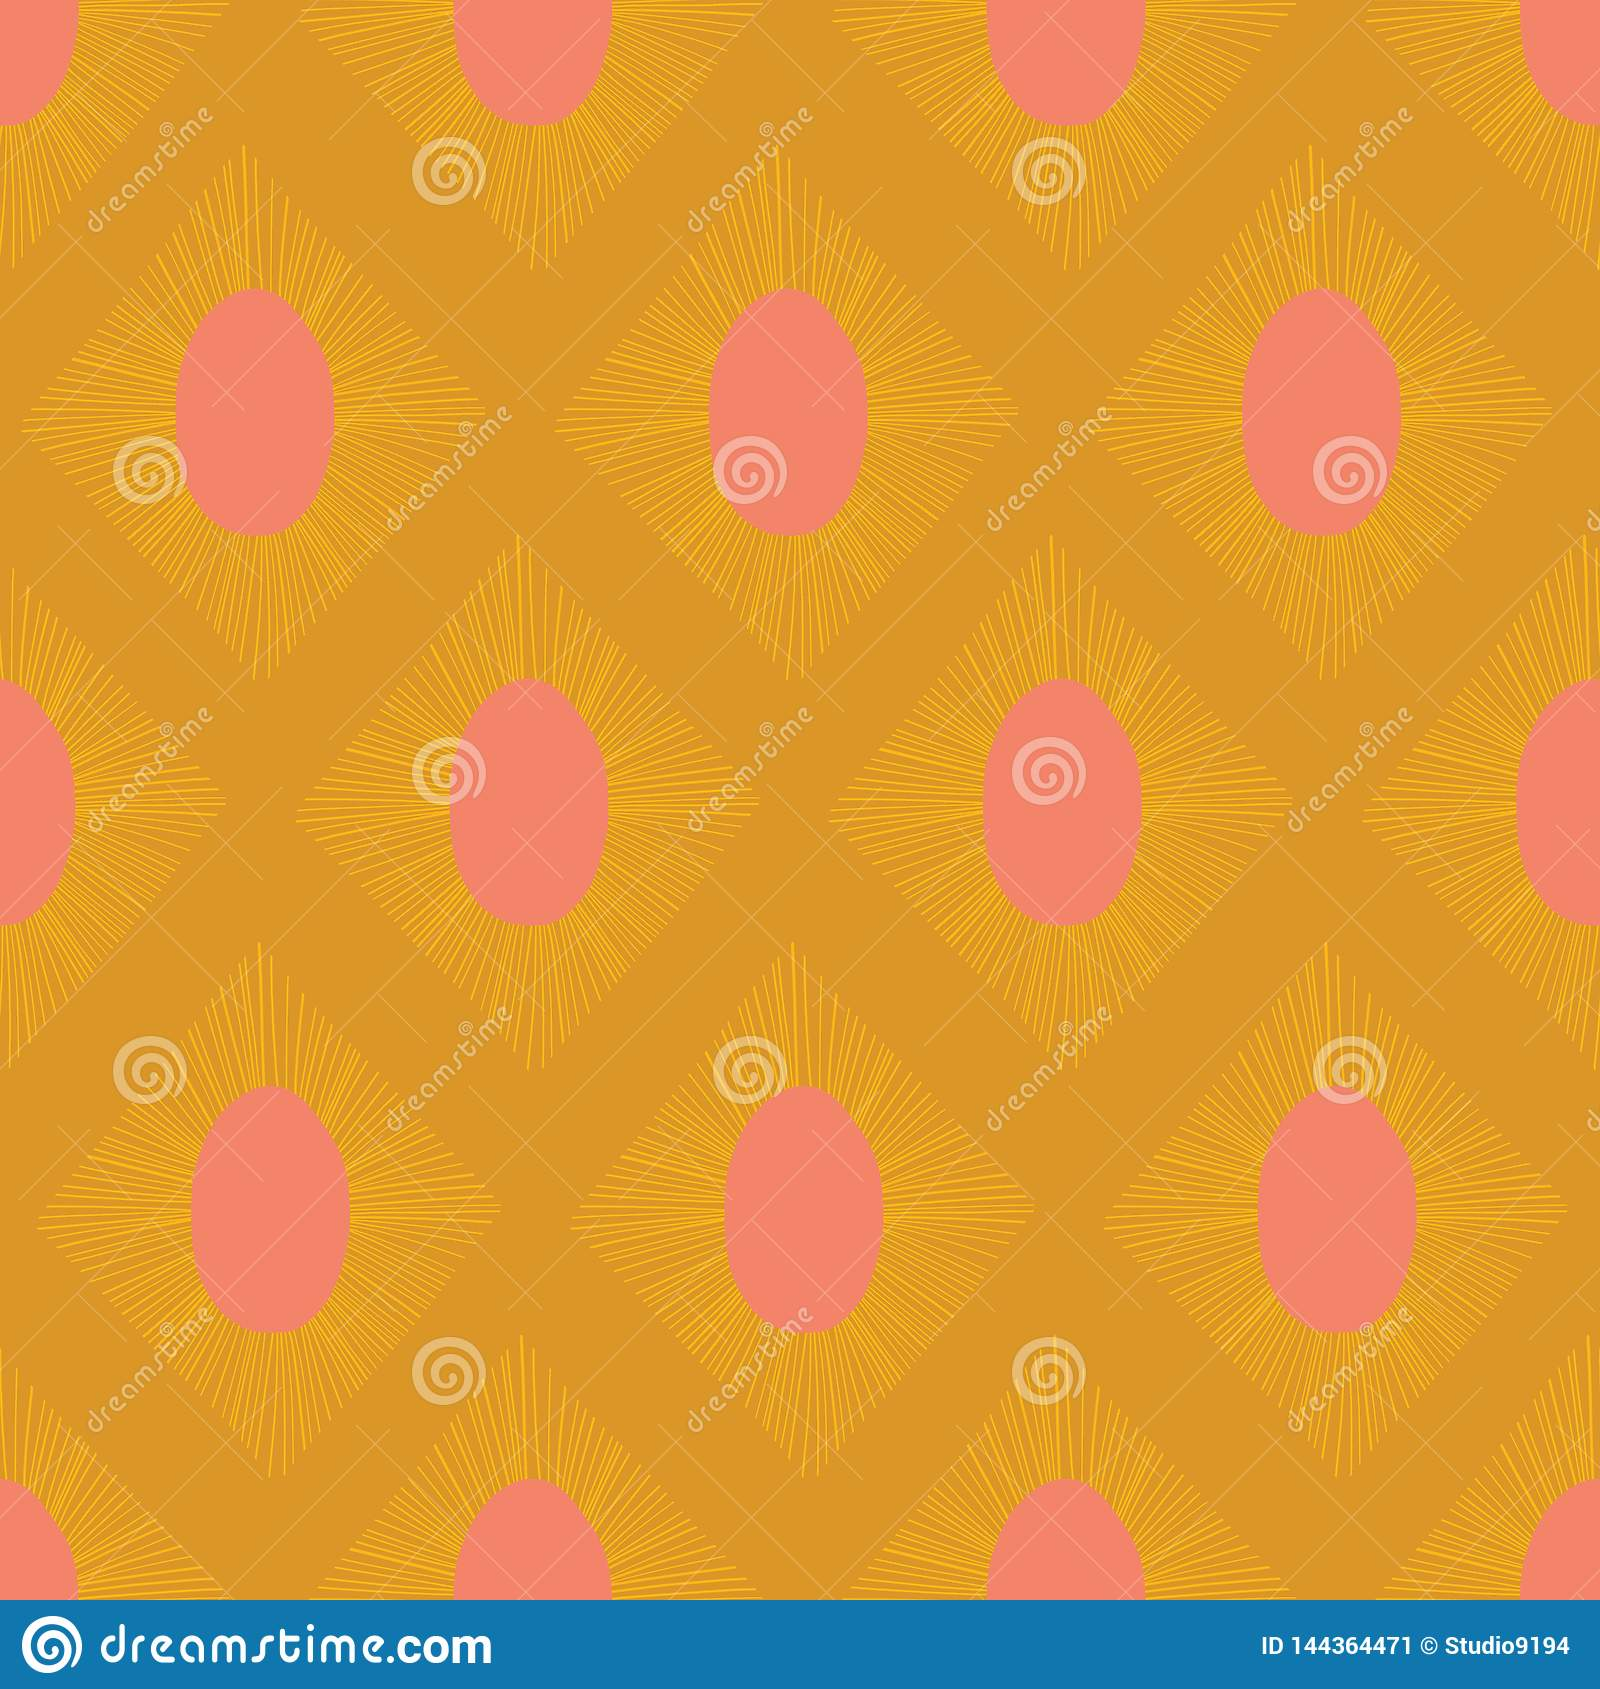 Modern Ikat seamless vector pattern gold yellow pink. Abstract rhombus shapes repeating background.